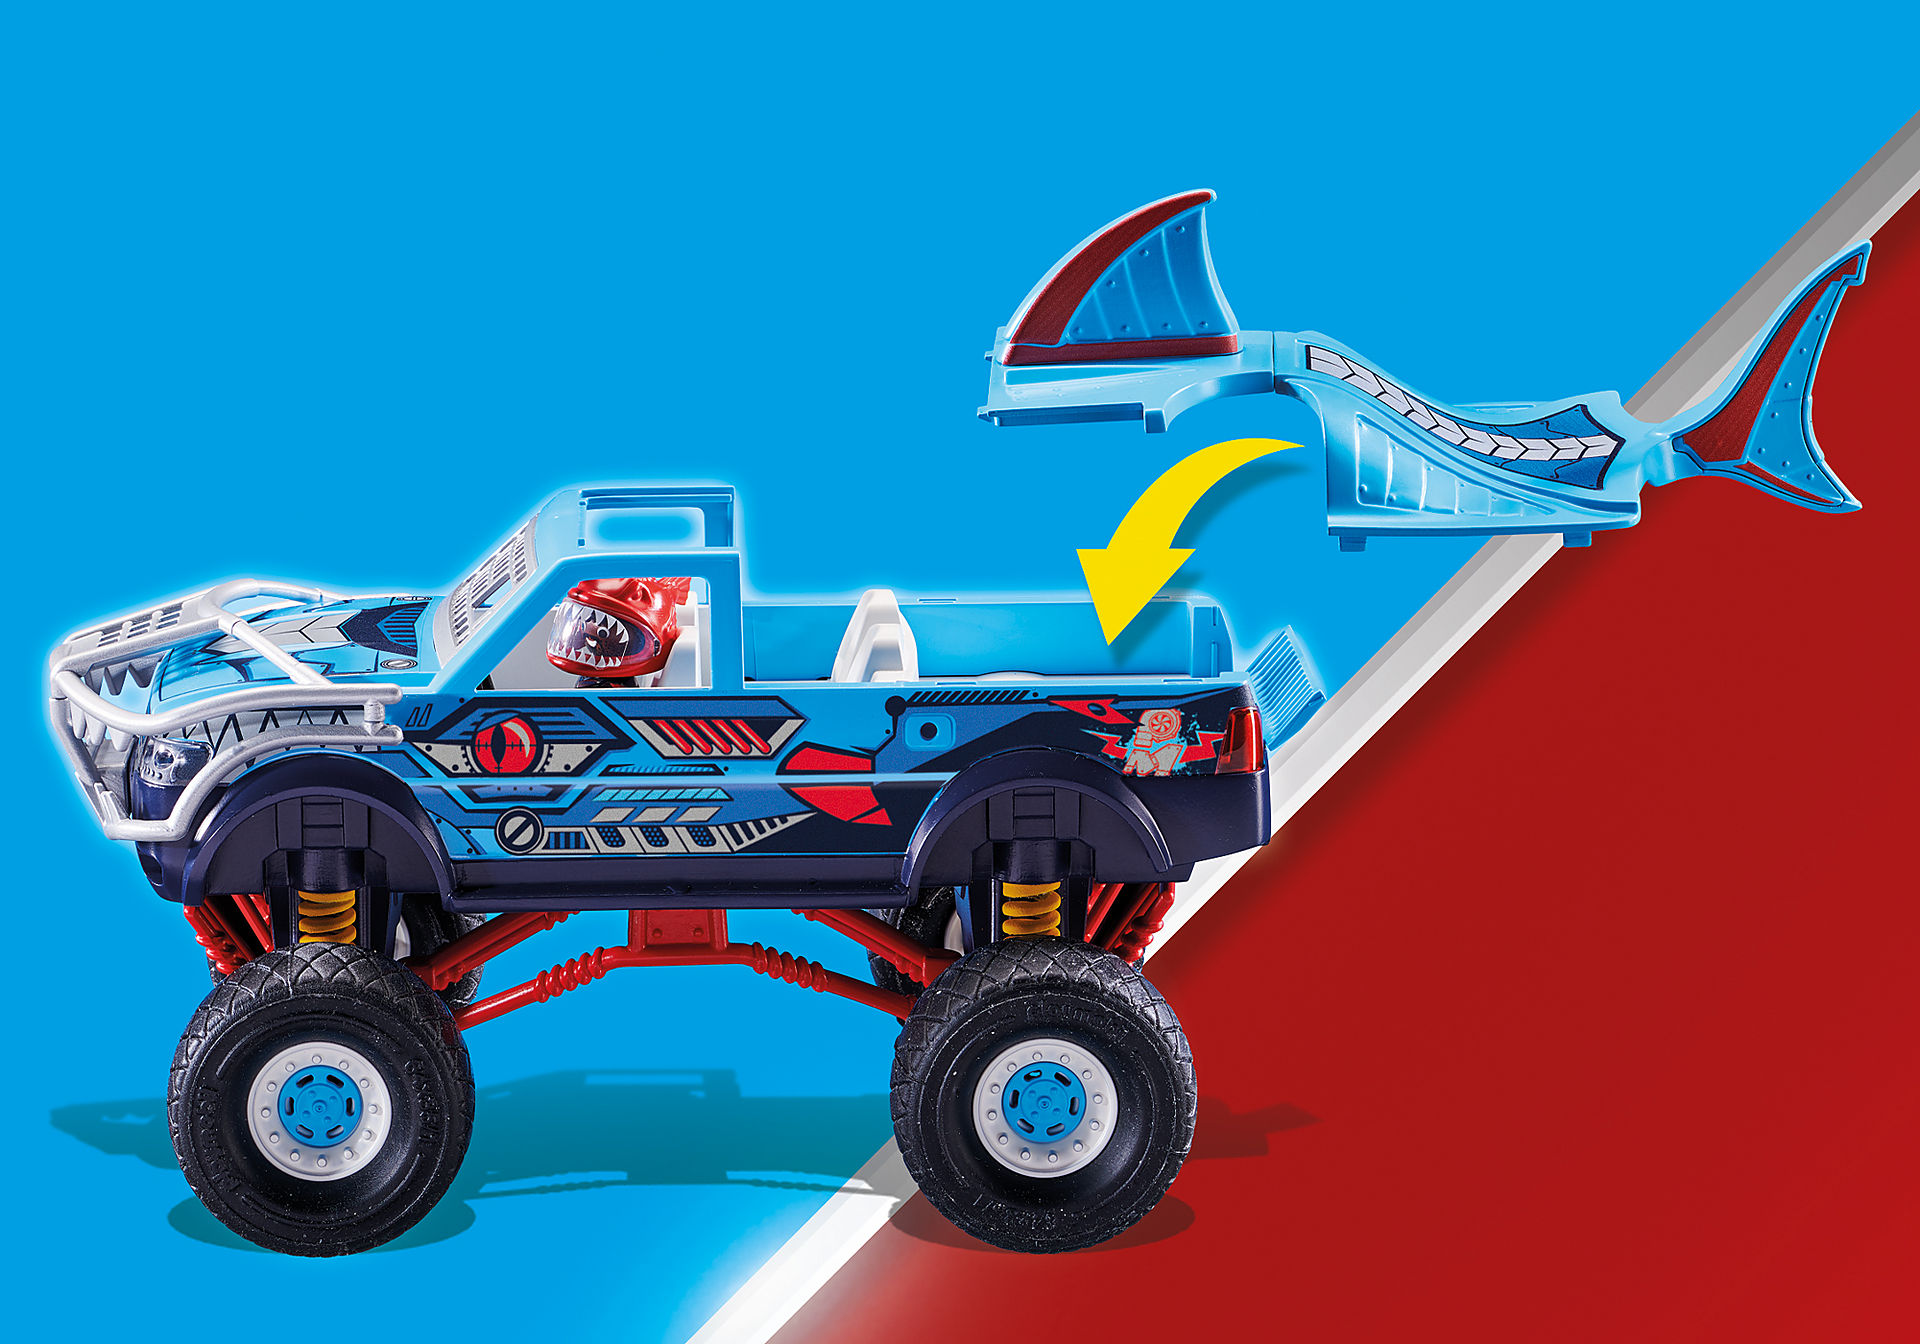 70550 Stunt Show Shark Monster Truck zoom image6